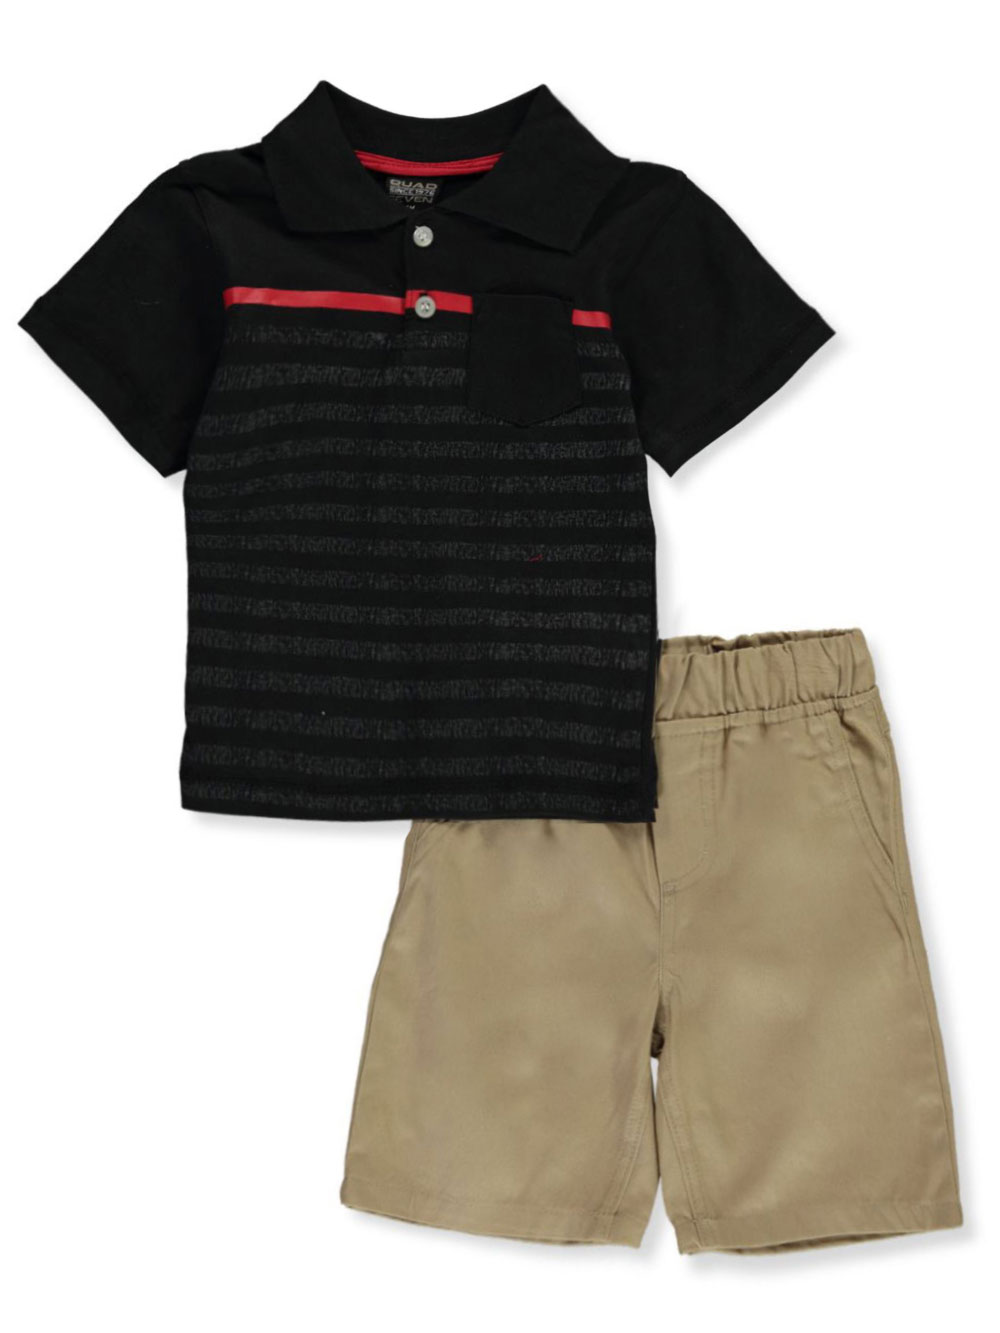 Quad Seven Boys 2-Piece French Terry Short Set